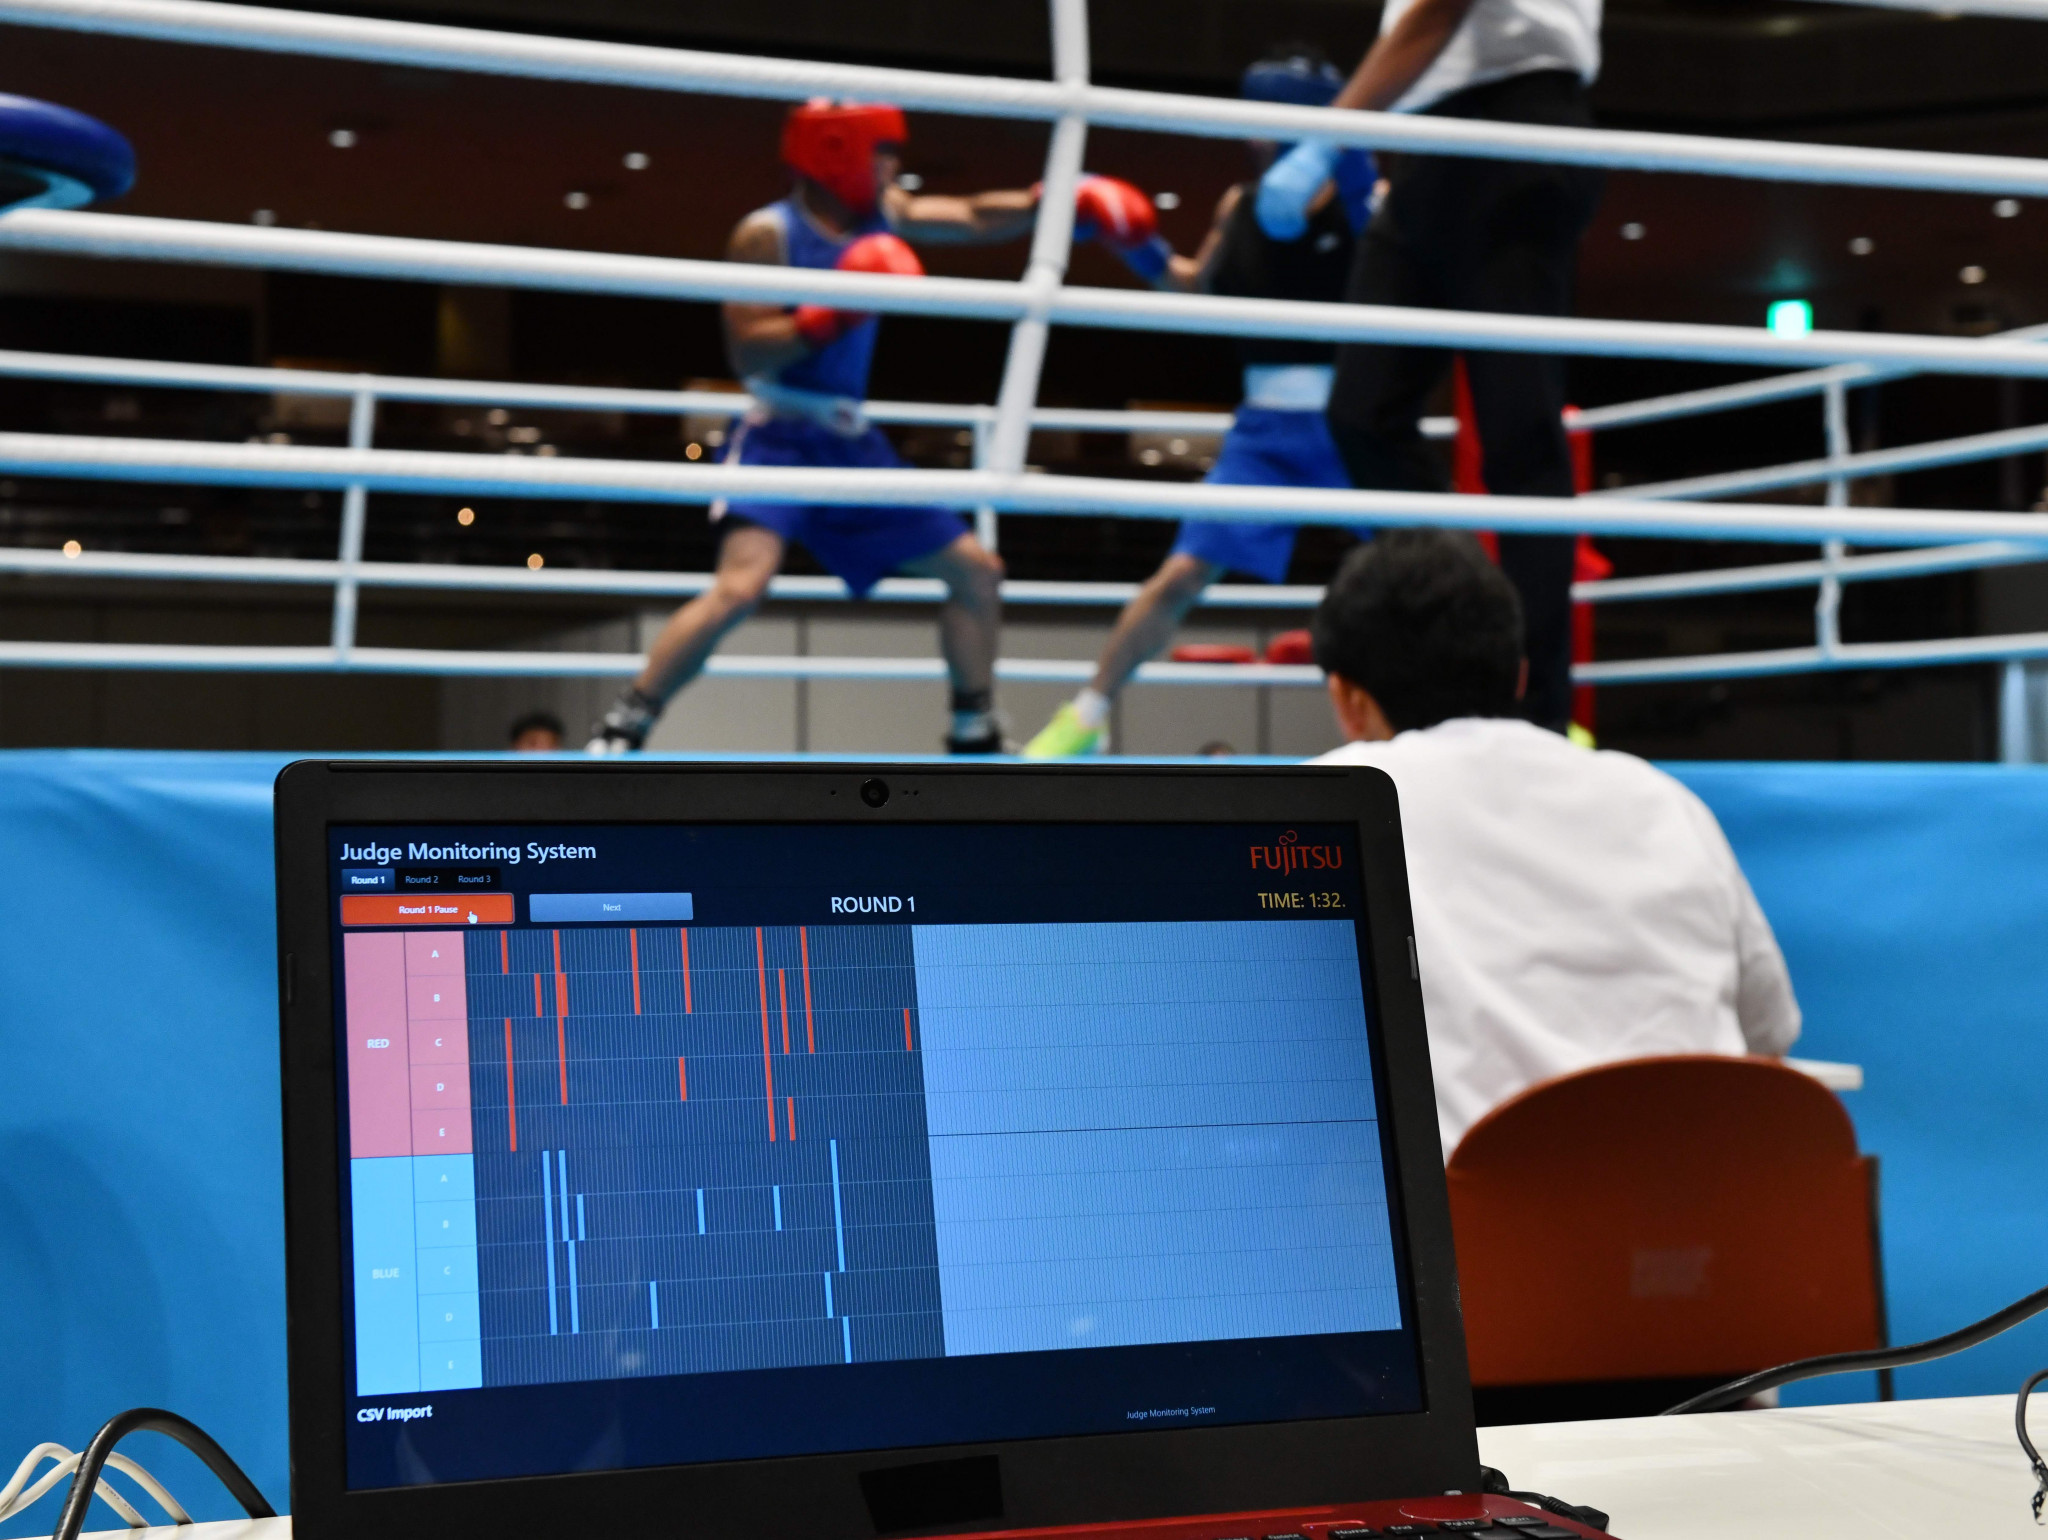 A judges monitoring system was introduced by the IOC boxing taskforce at a Tokyo 2020 test event ©Getty Images